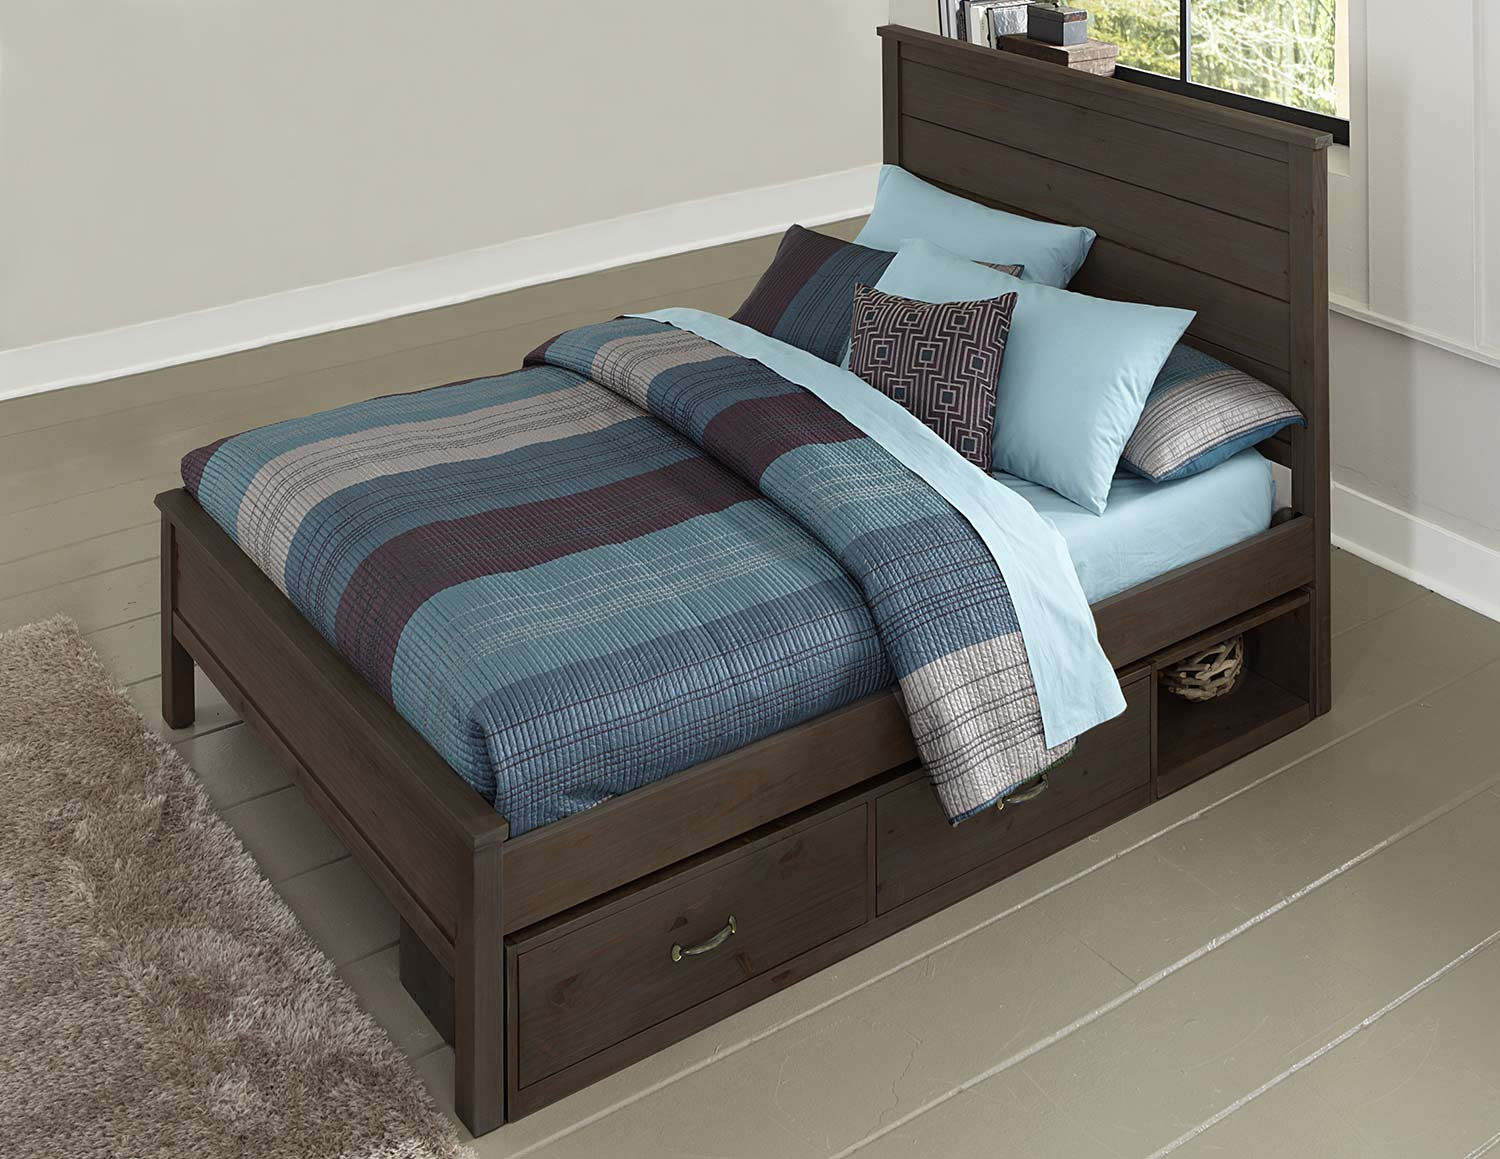 NE Kids Highlands Alex Panel Bed With Storage - Espresso